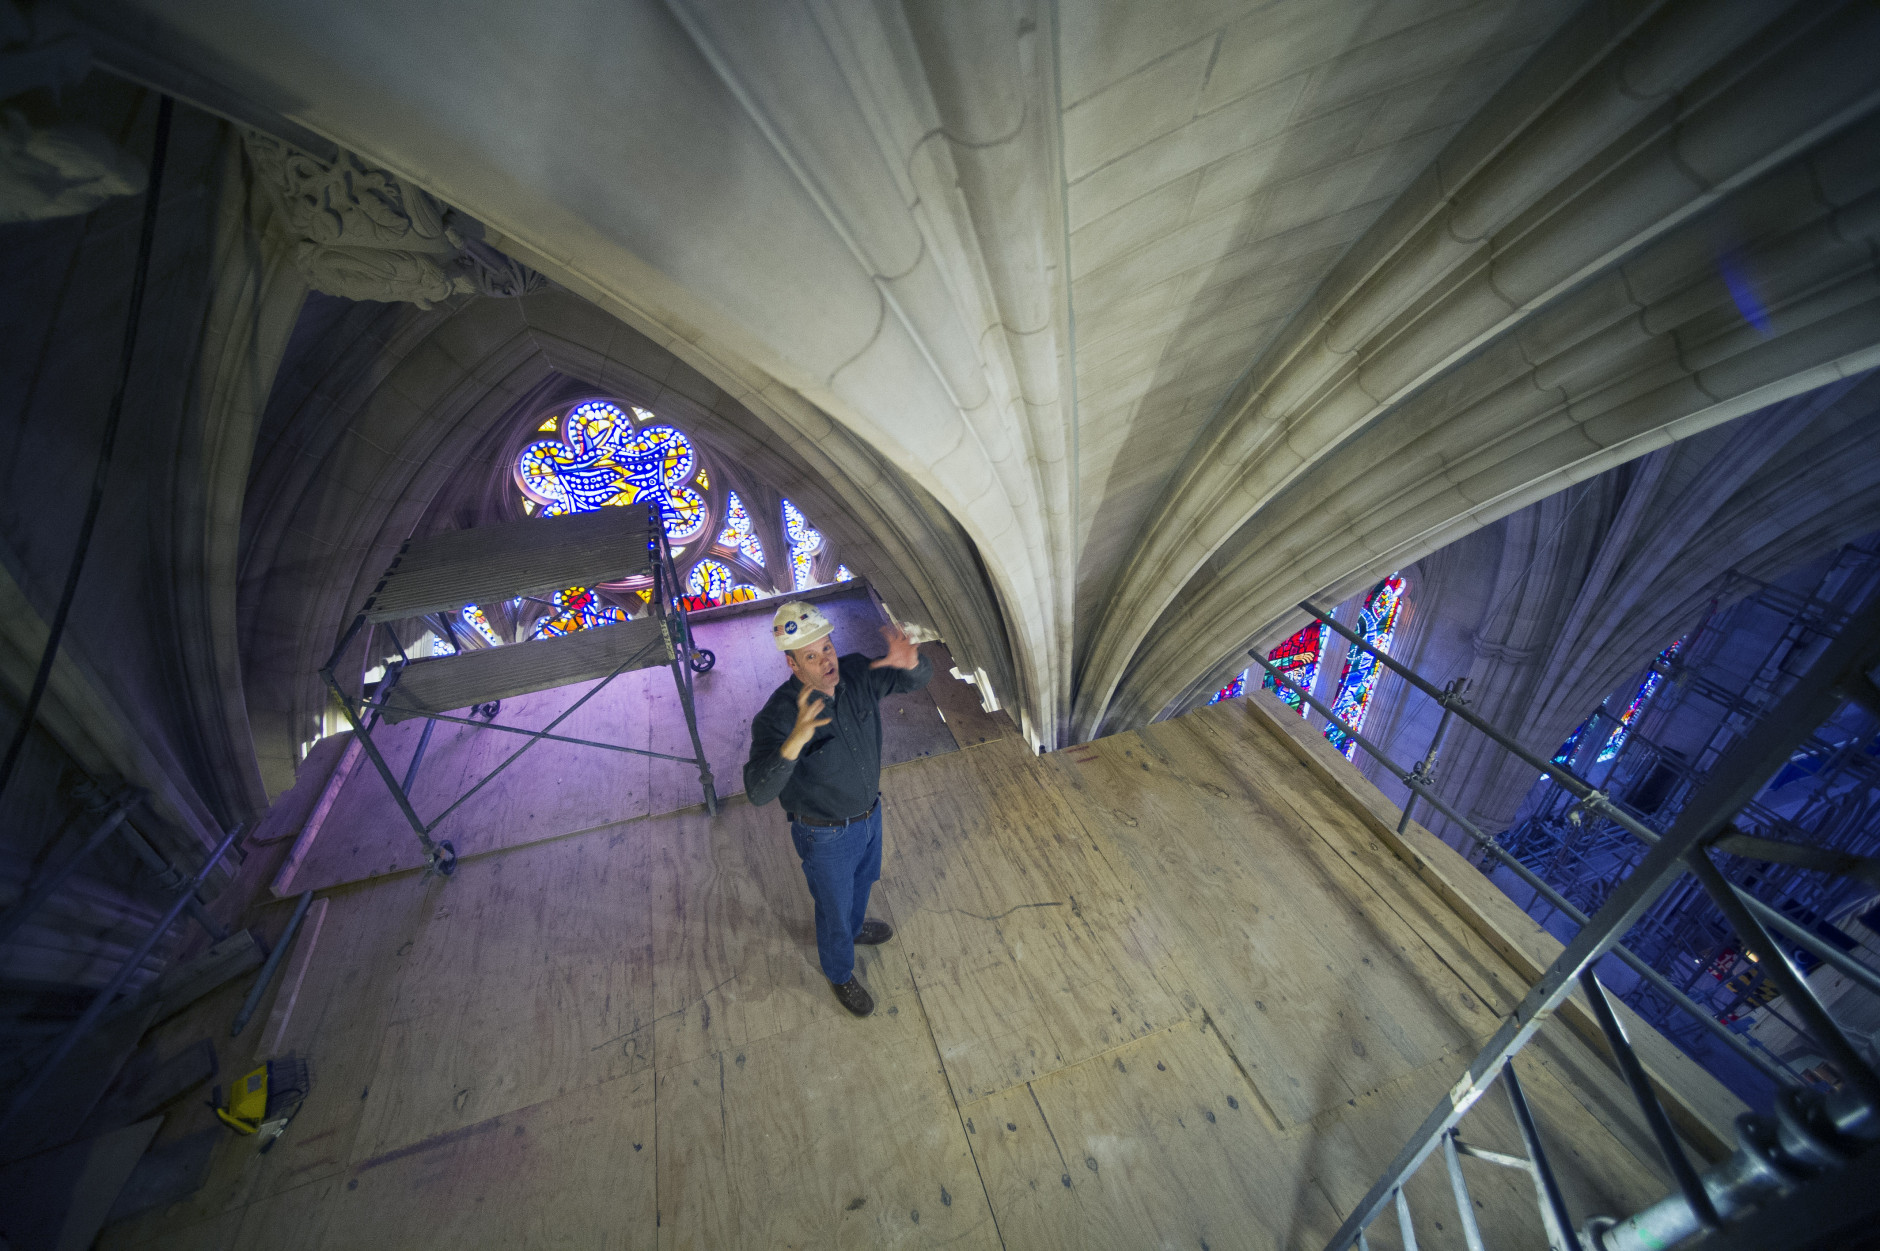 Head Mason Joe Alonso talks about repairs and cleaning of the stonework in the ceiling at the Washington National Cathedral on scaffolding 65 feet above the nave floor, Wednesday, Feb. 18, 2015, in Washington. The Washington National Cathedral has finished the first phase of restoration work needed after an earthquake in 2011. The iconic Episcopal cathedral in northwest Washington is holding a news conference Wednesday to discuss details of the restoration work, estimated to cost $32 million overall. Additional restoration work is expected to take years. (AP Photo/Cliff Owen)